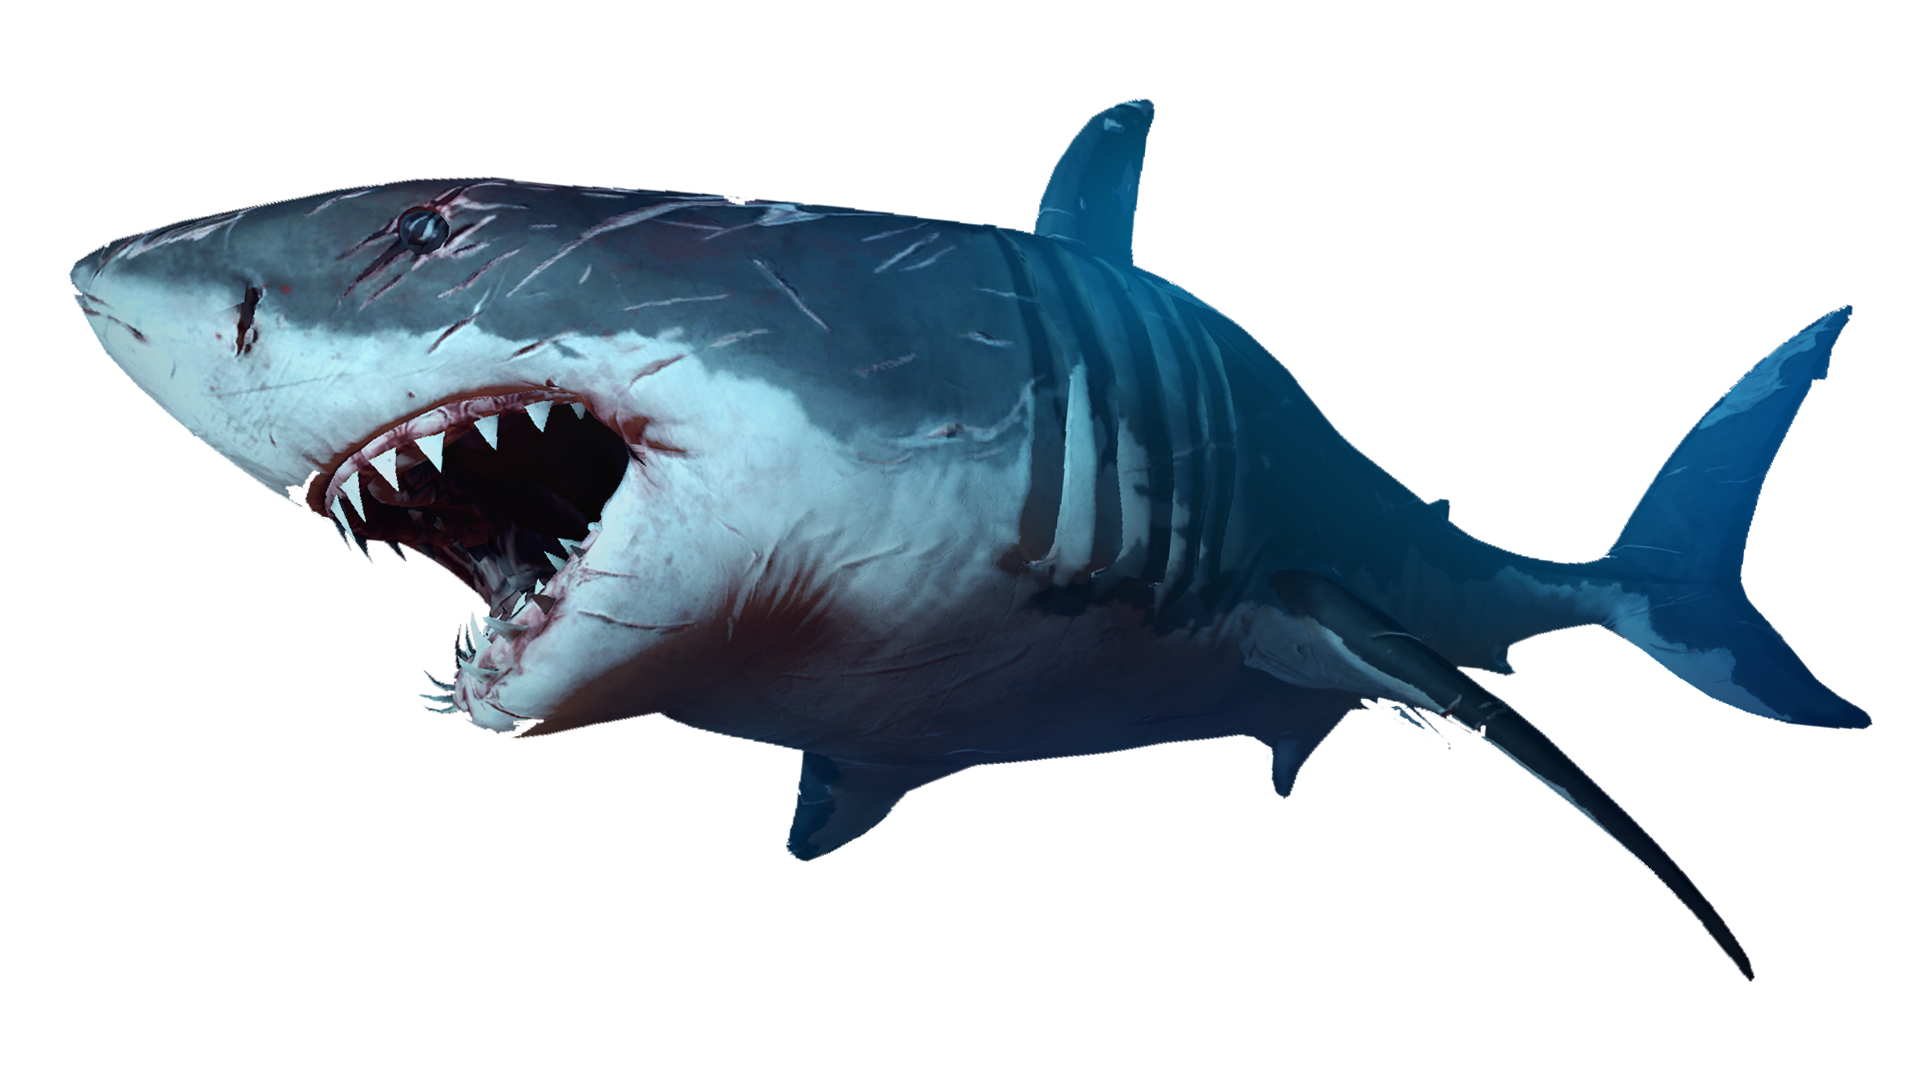 Transparent clipart shark. Sharks icon web icons